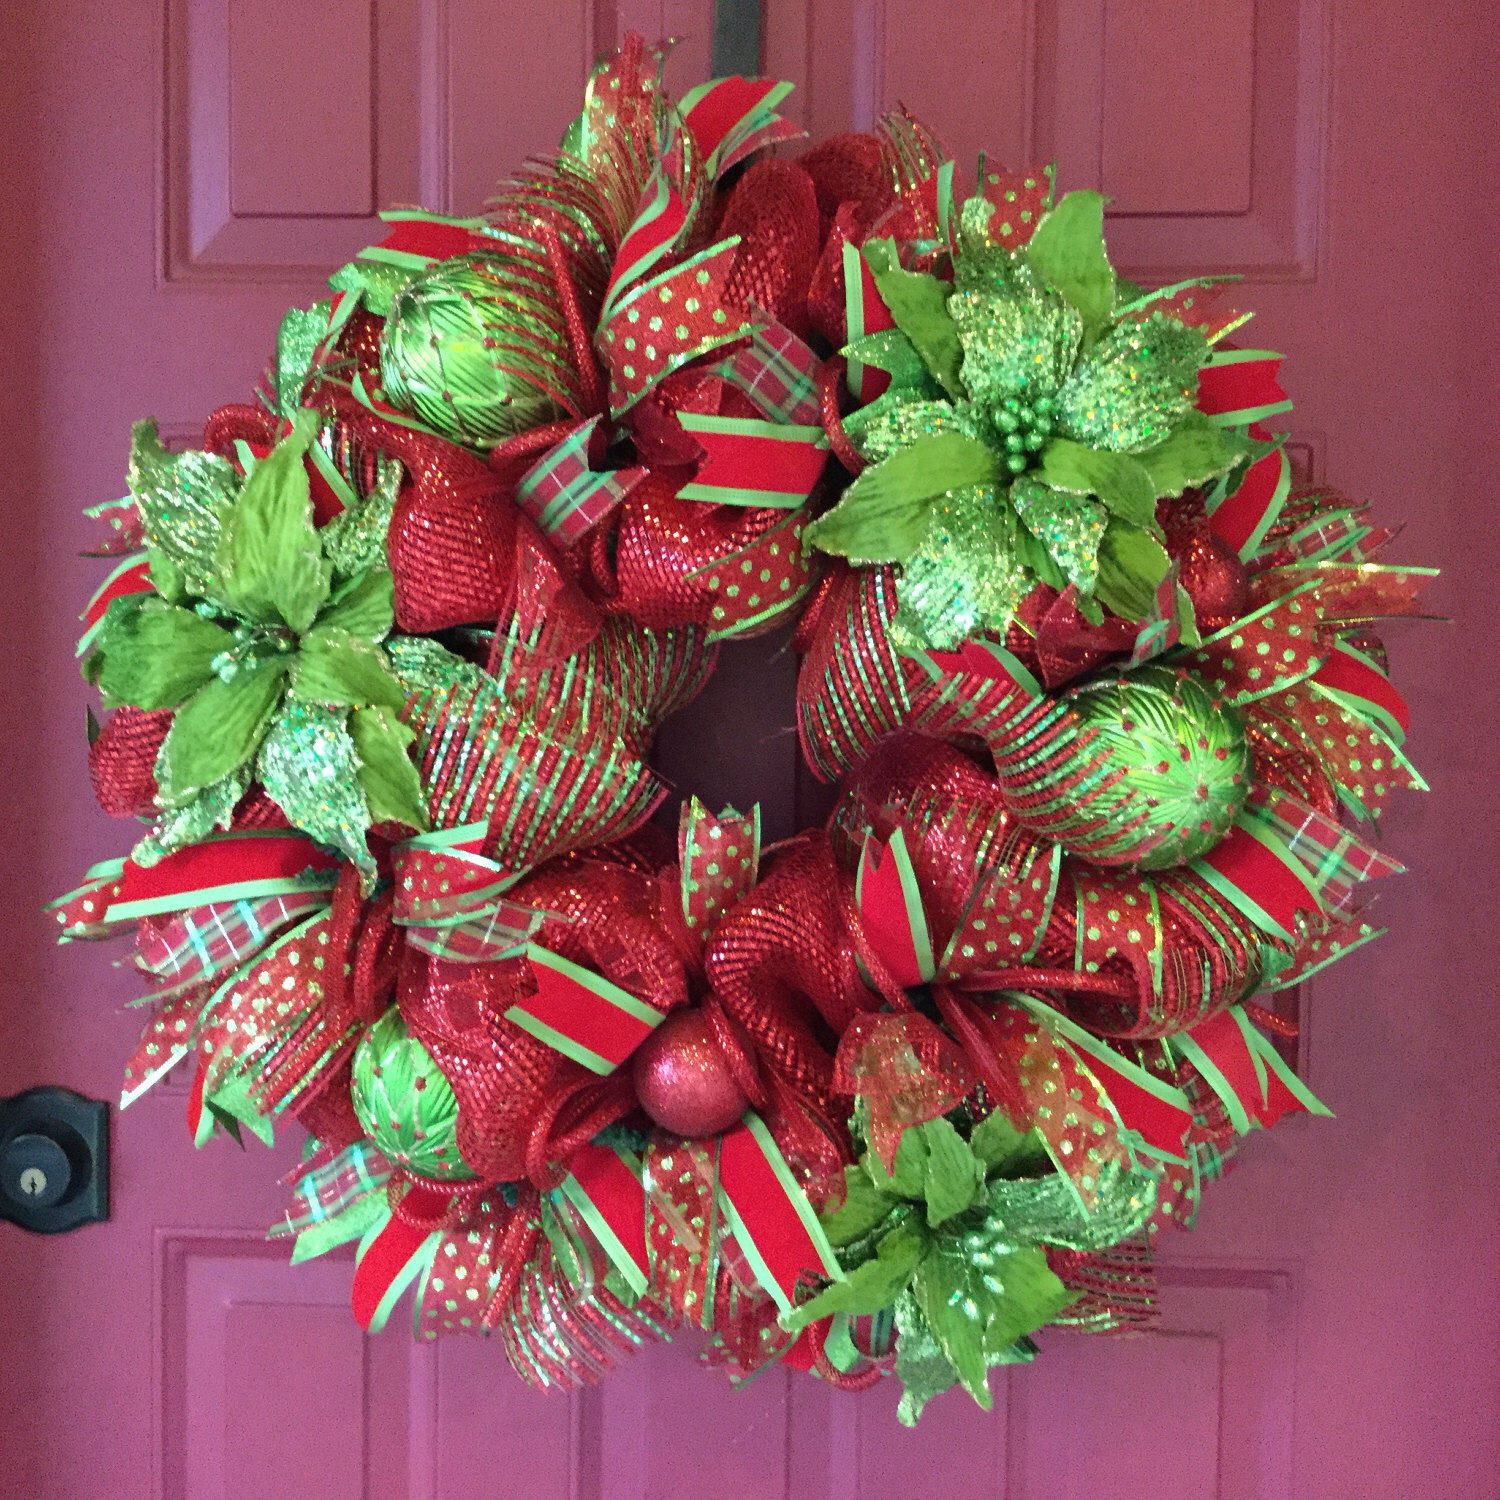 Front door deco mesh christmas decorations - Christmas Deco Mesh Wreath With Poinsettias Poinsettia Wreath Door Wreath For Winter Winter Holiday Decor Red And Green Holiday Wreath